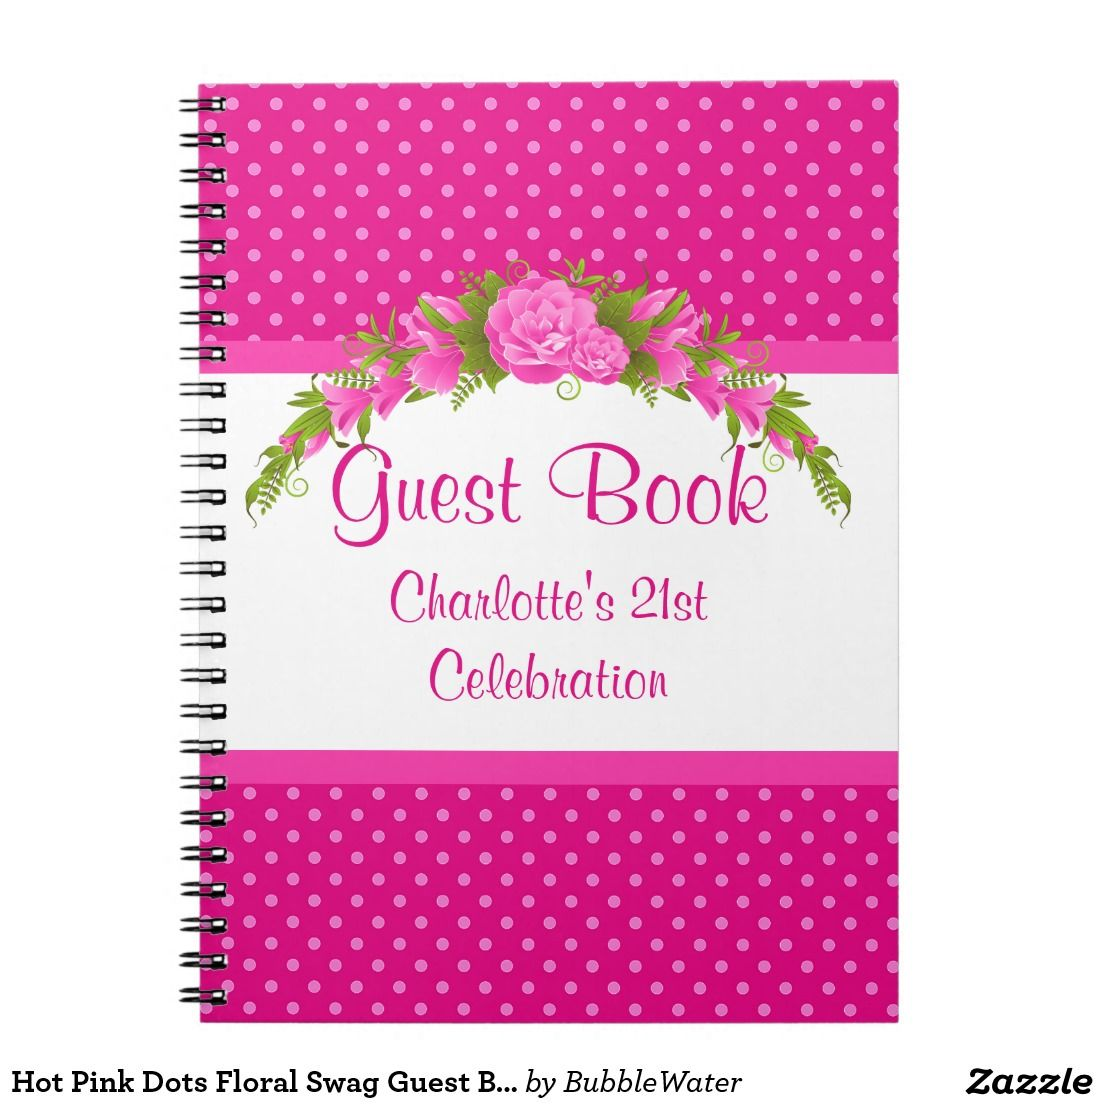 Hot Pink Dots Floral Swag Guest Book/Notebook